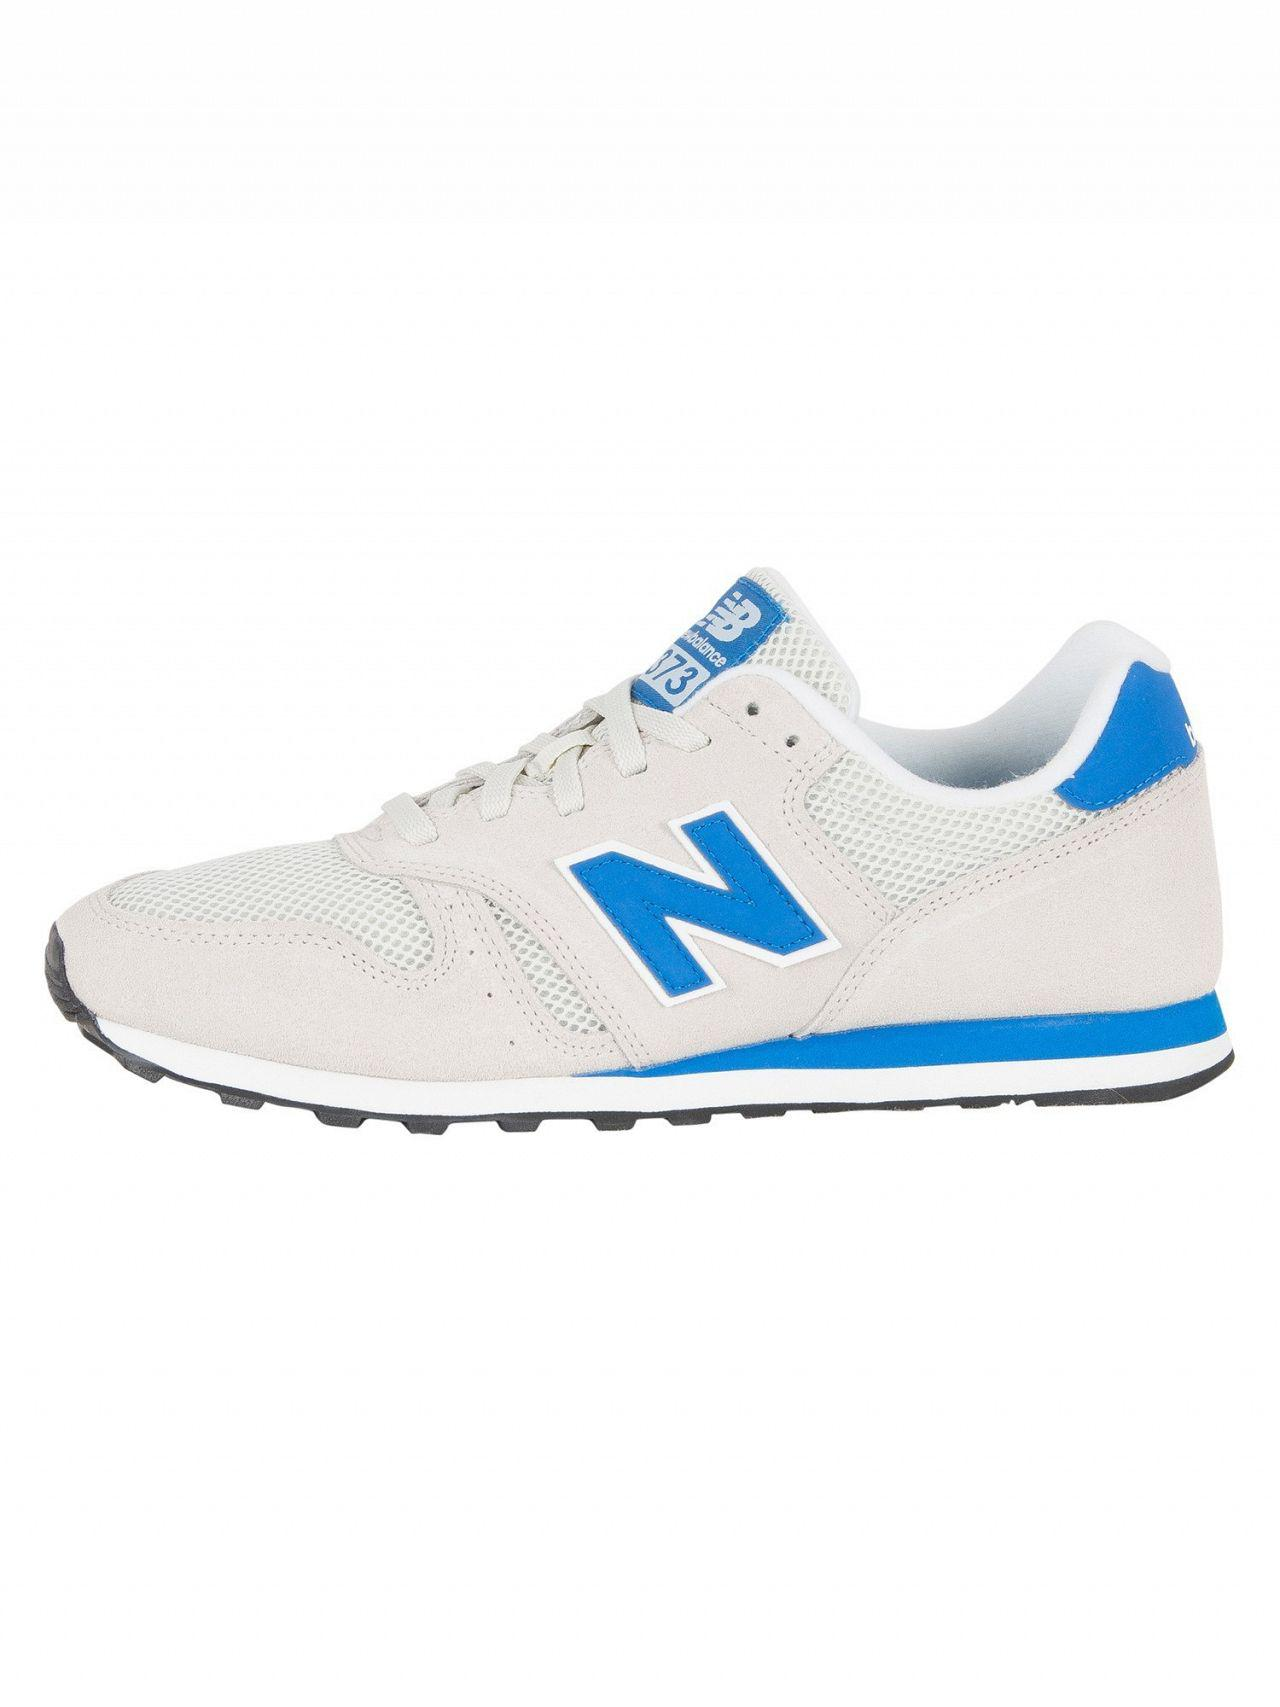 outlet store sale unique design where to buy New Balance Off White/blue 373 Suede Trainers for Men - Lyst